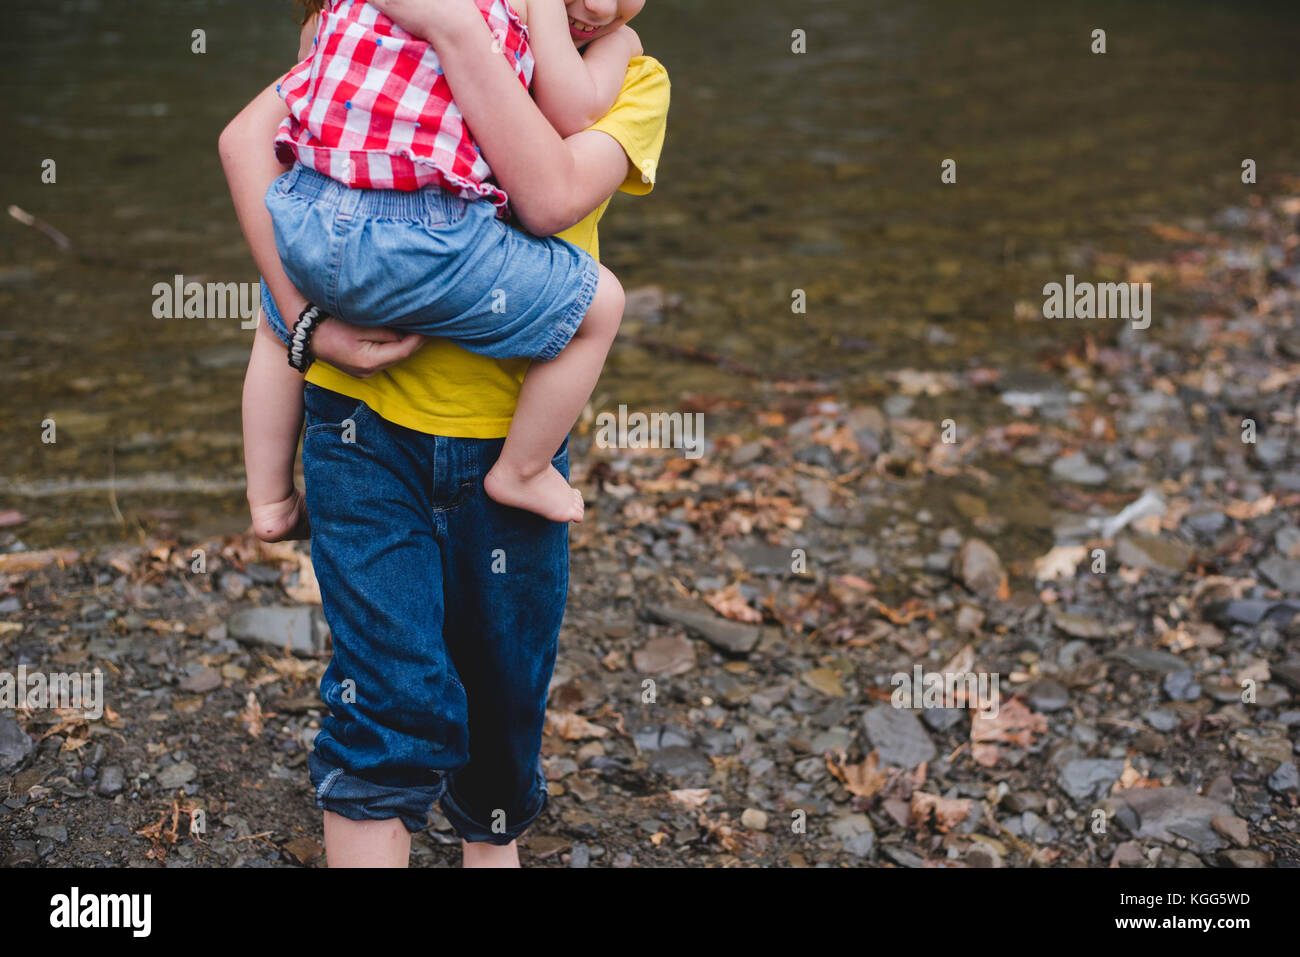 A boy carries a child in his arms - Stock Image